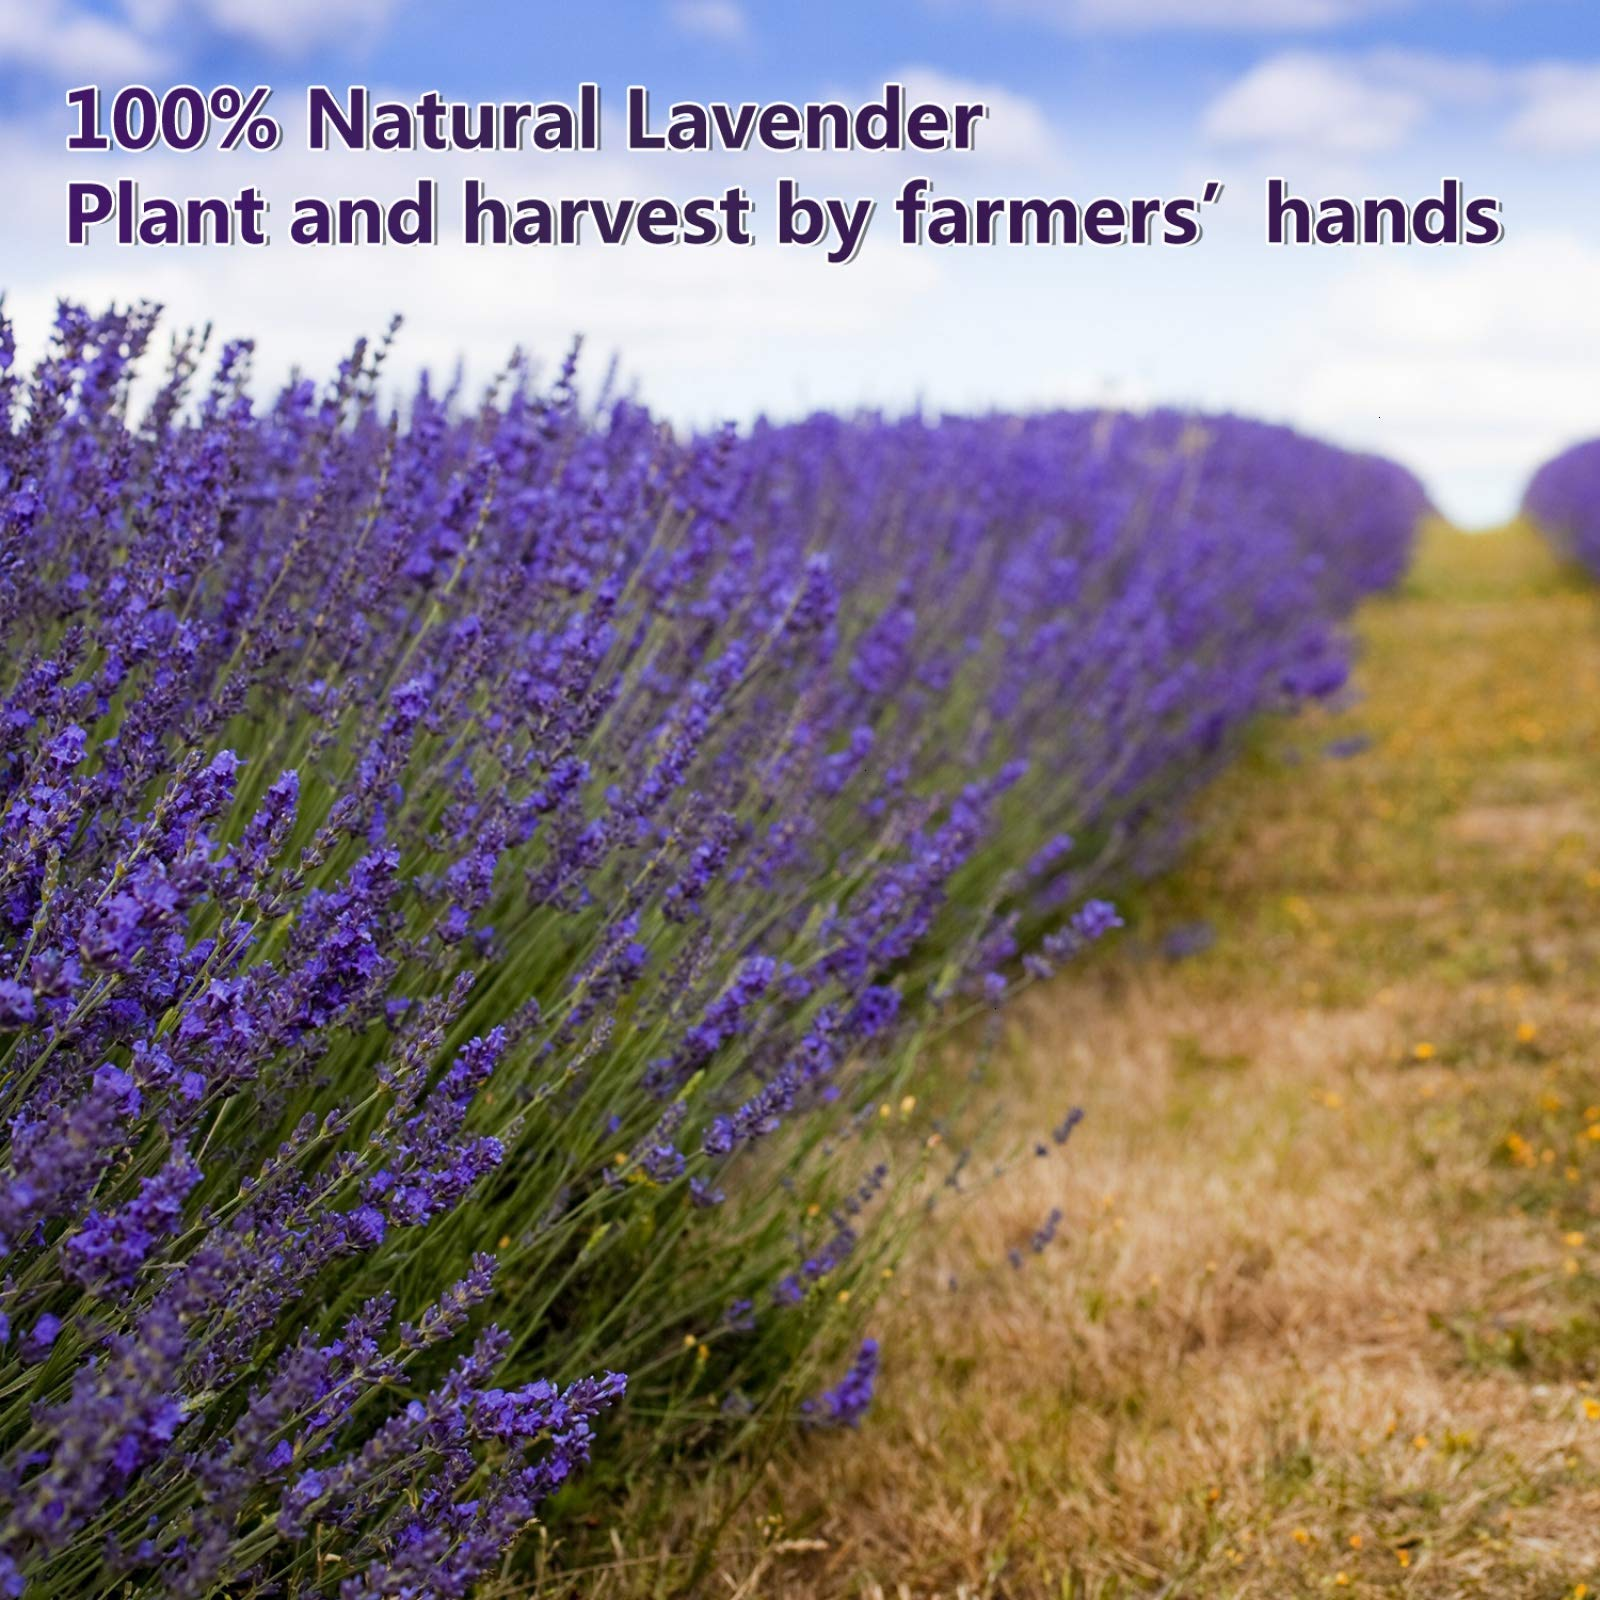 Timoo Dried Lavender Bundles 100% Natural DriedLavenderFlowers for Home Decoration, Photo Props, Home Fragrance, 2 Bundles Pack by Timoo (Image #7)